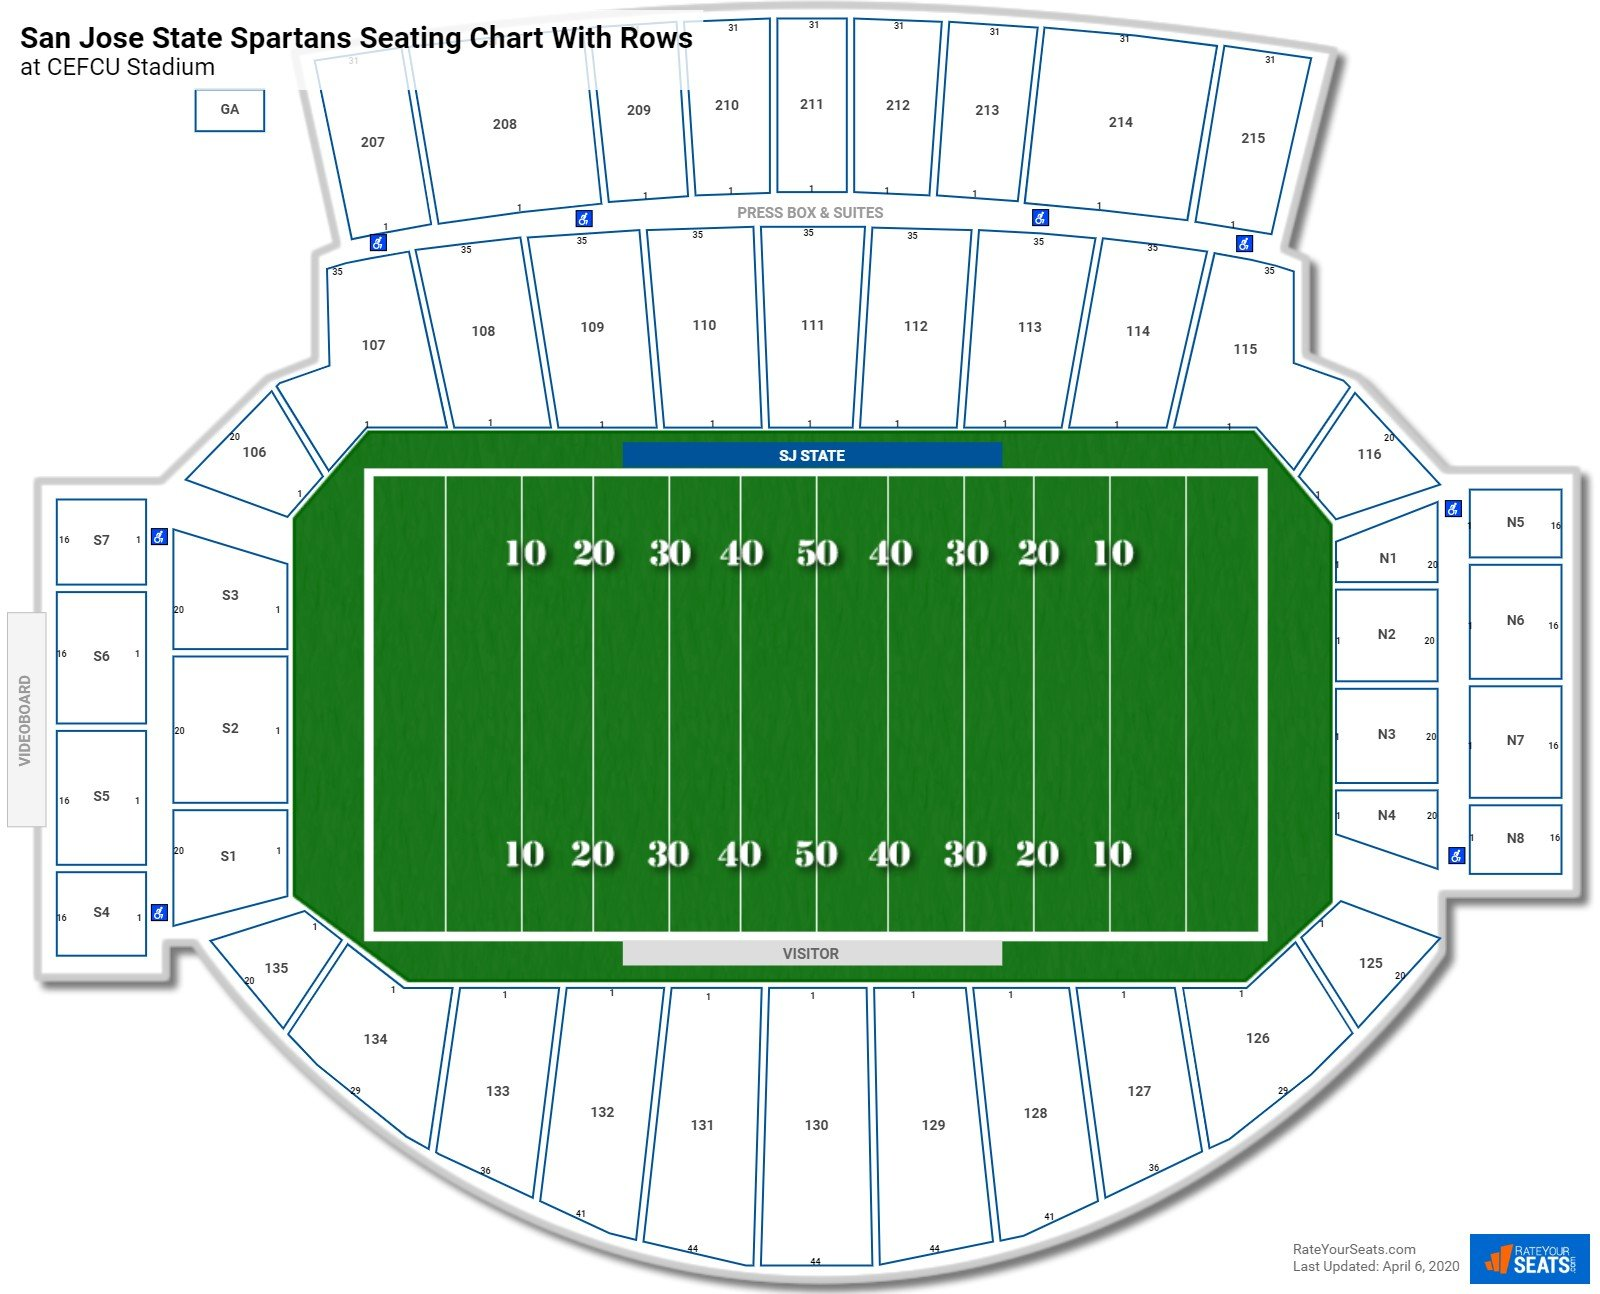 CEFCU Stadium seating chart with rows